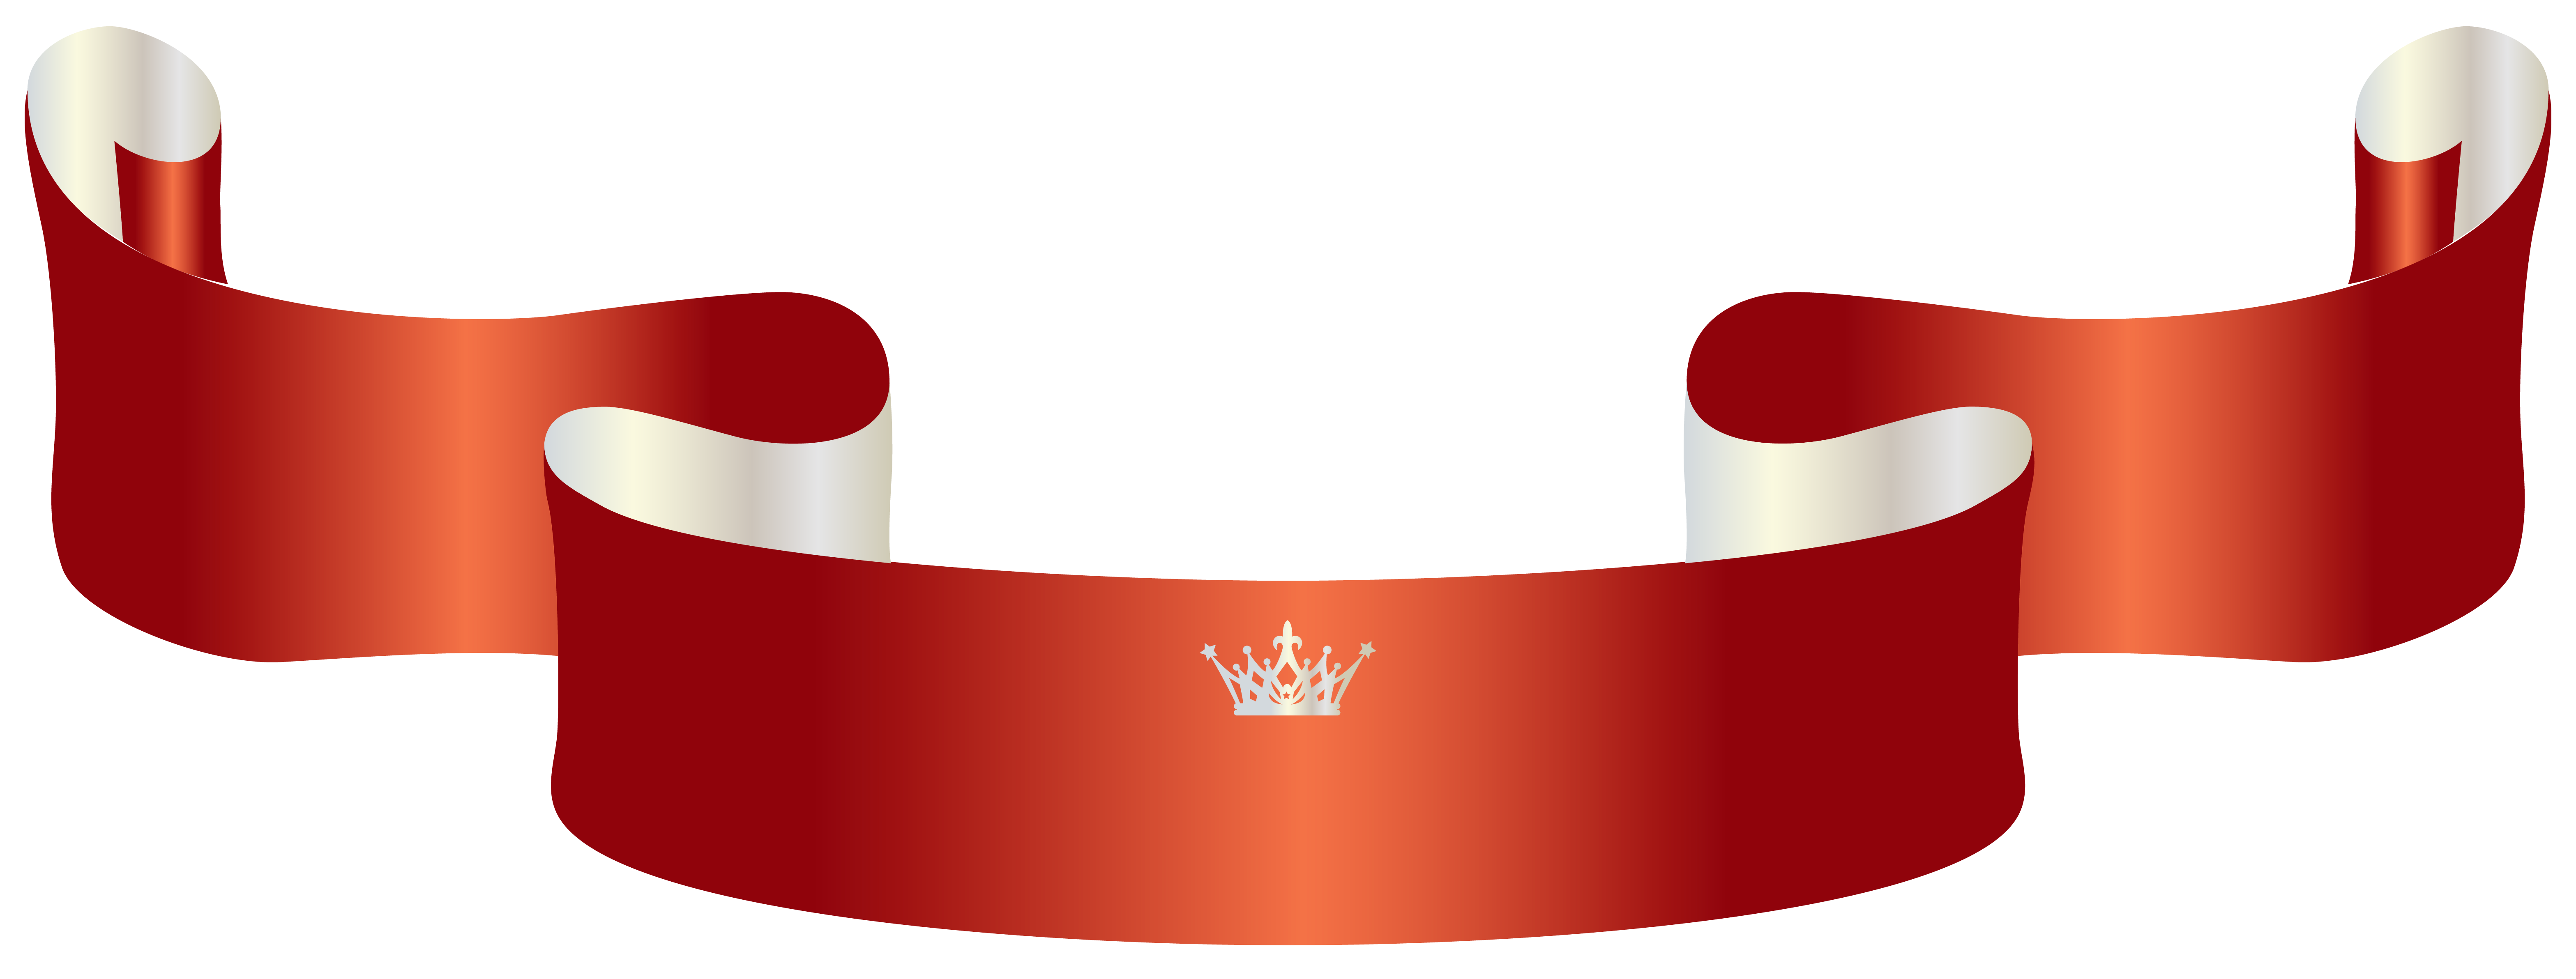 Clipart crown png graphic free library Crown clipart png - ClipartFest graphic free library